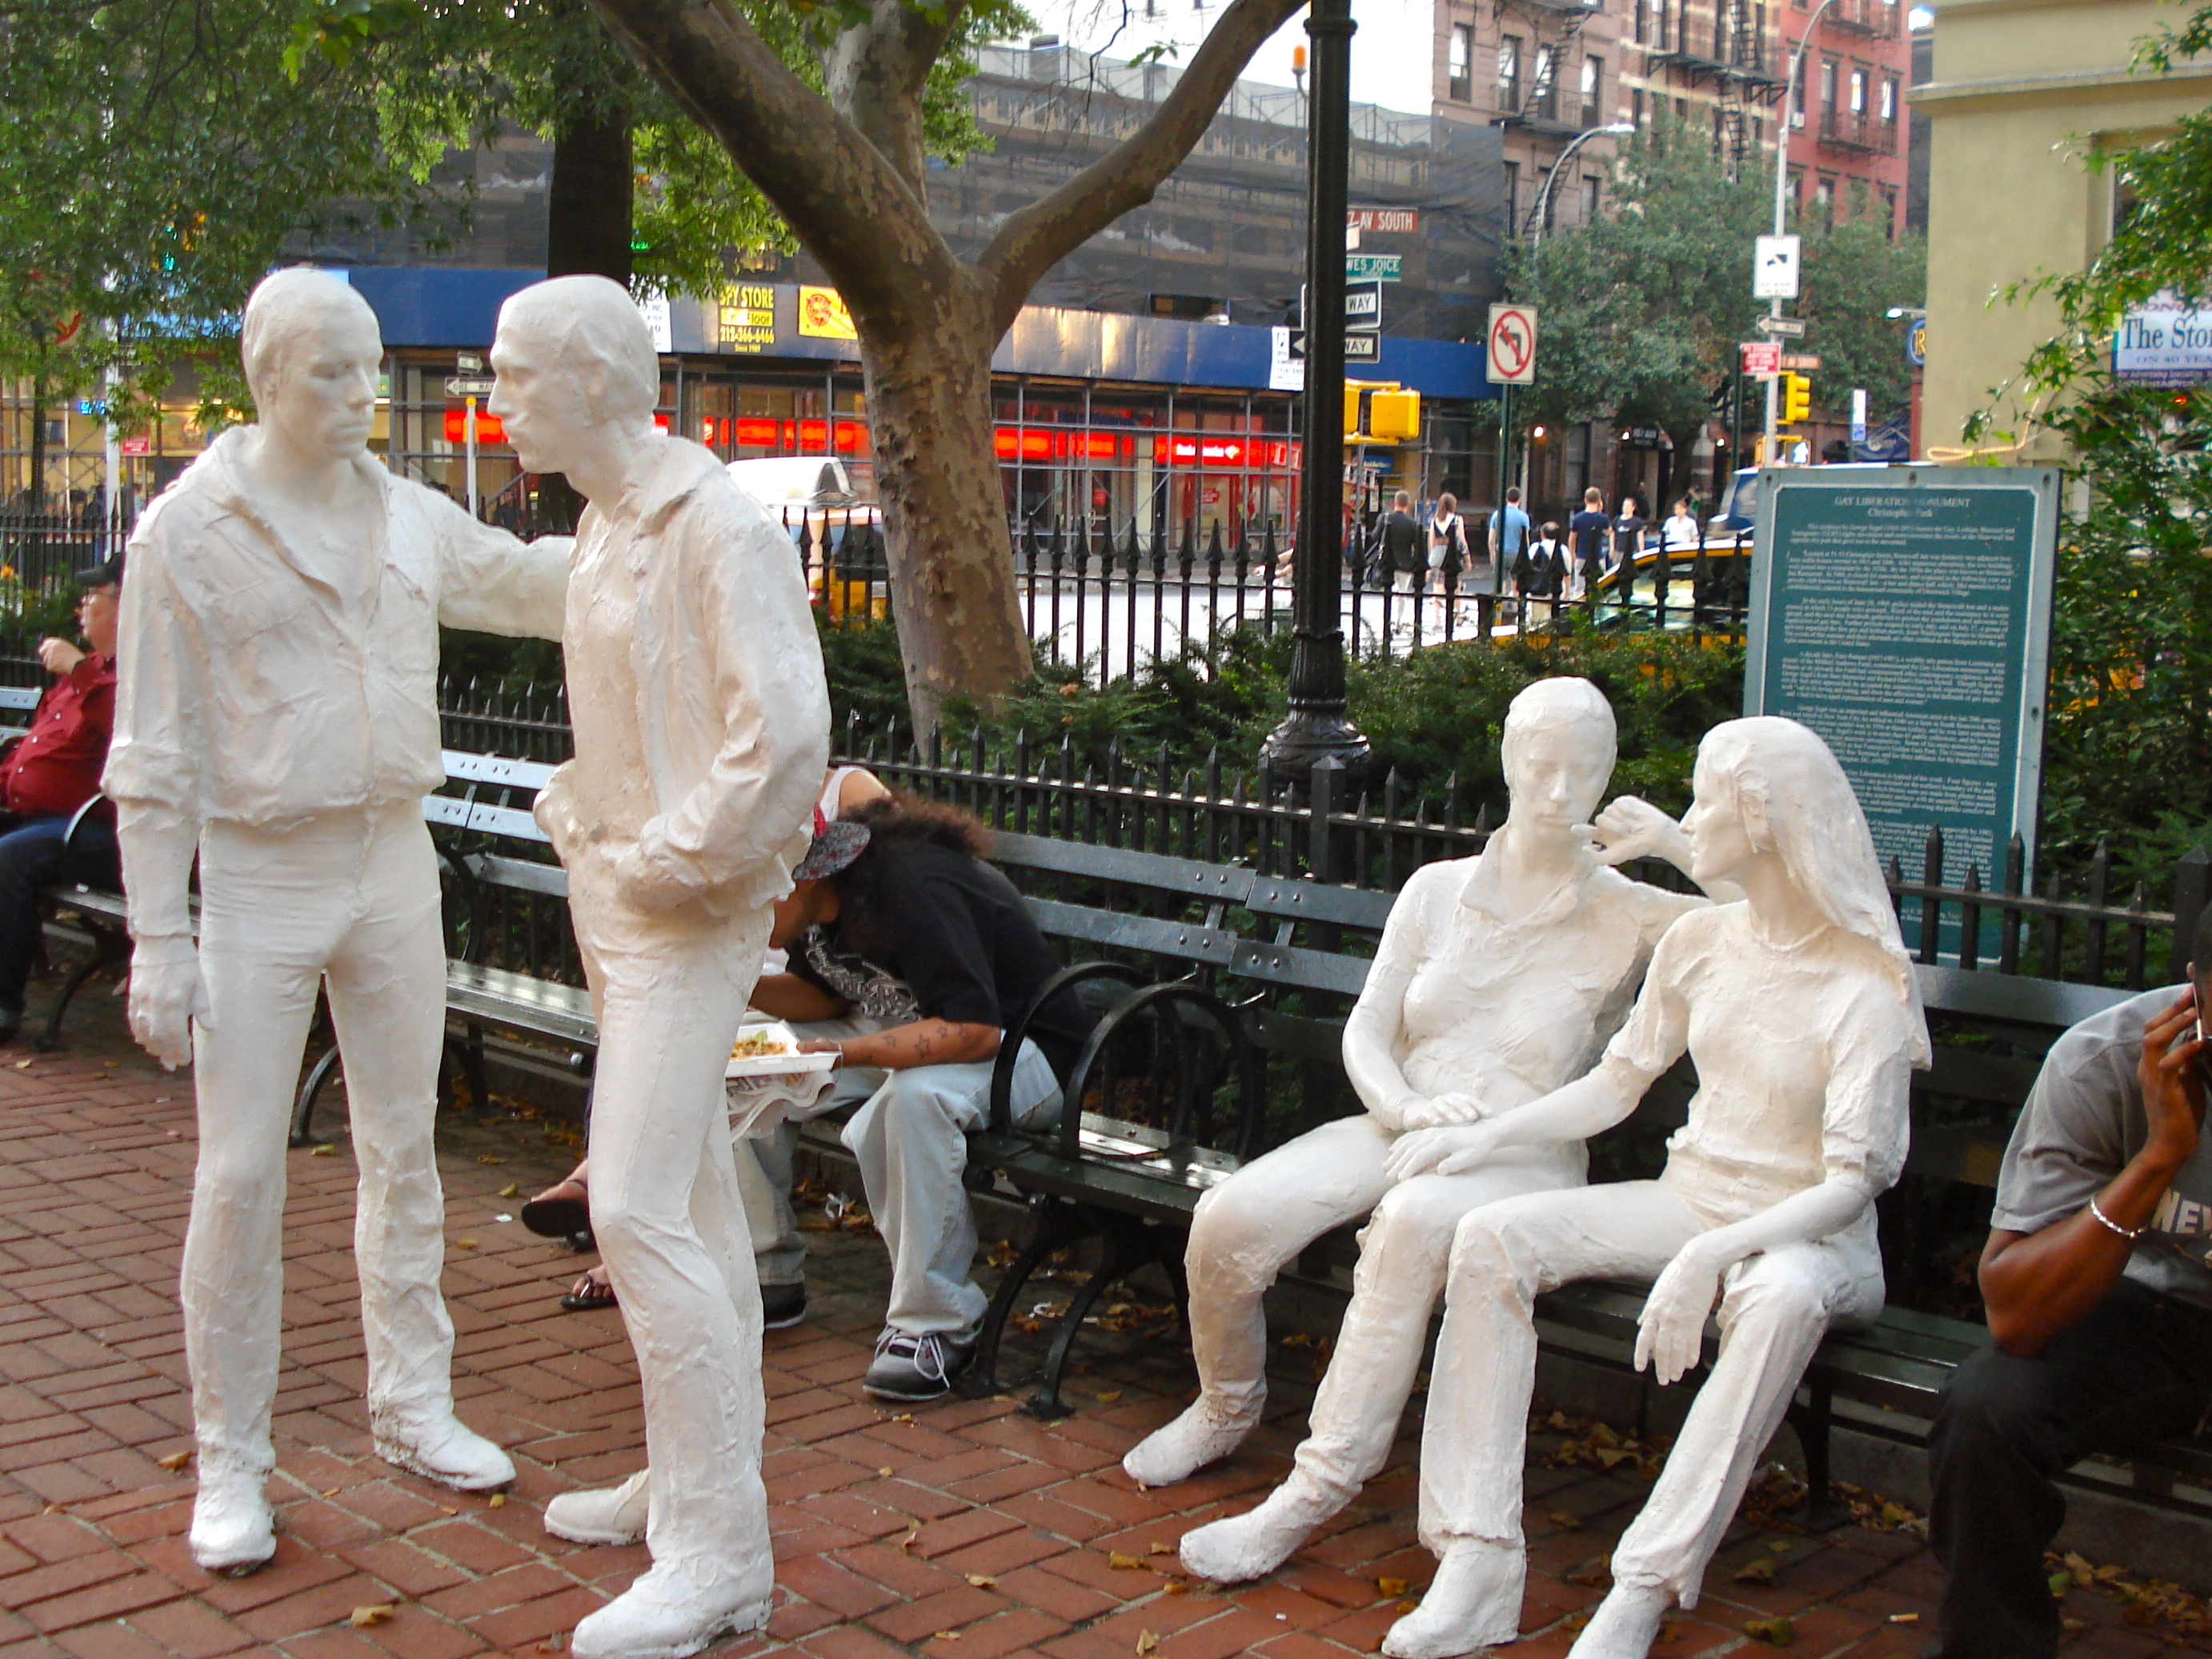 The park is located right in front of the Stonewall Inn.